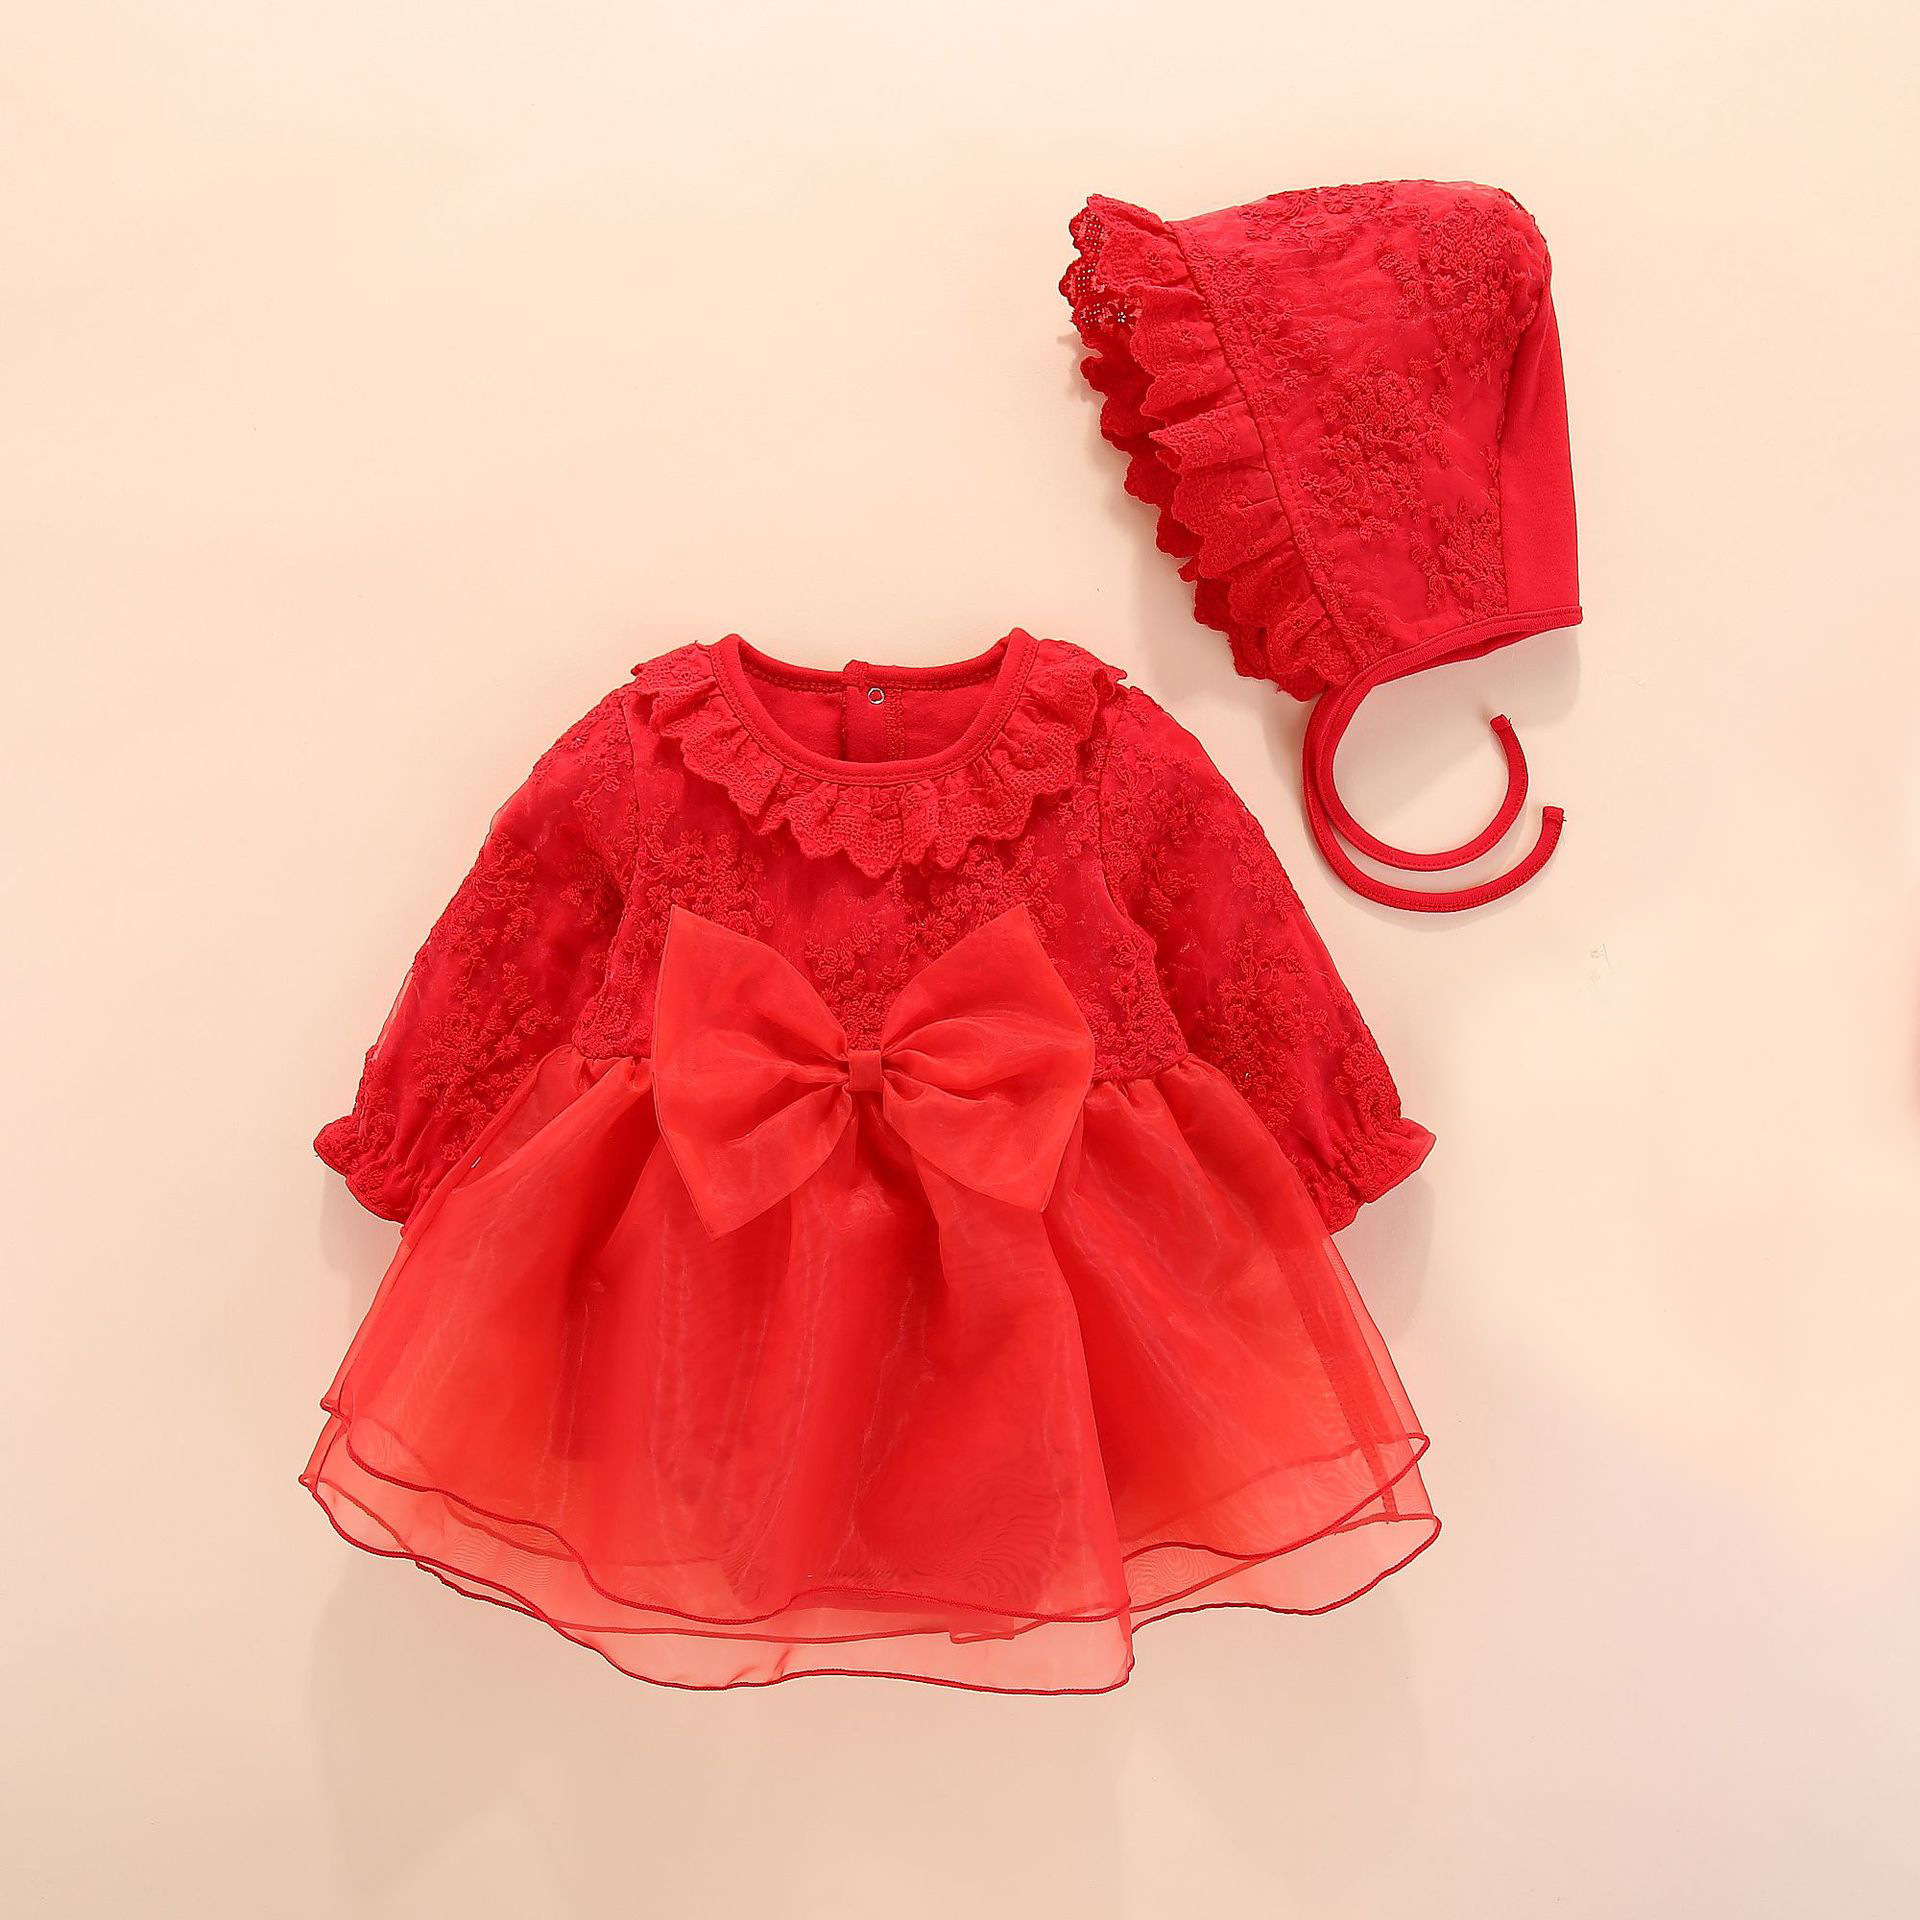 New Top Fashion Xmas <font><b>Long</b></font> <font><b>Sleeve</b></font> <font><b>Red</b></font> Pink Lace Romper <font><b>Dress</b></font> Newborn Baby <font><b>Girl</b></font> <font><b>Christmas</b></font> Sister Princess Kid Party Costume image